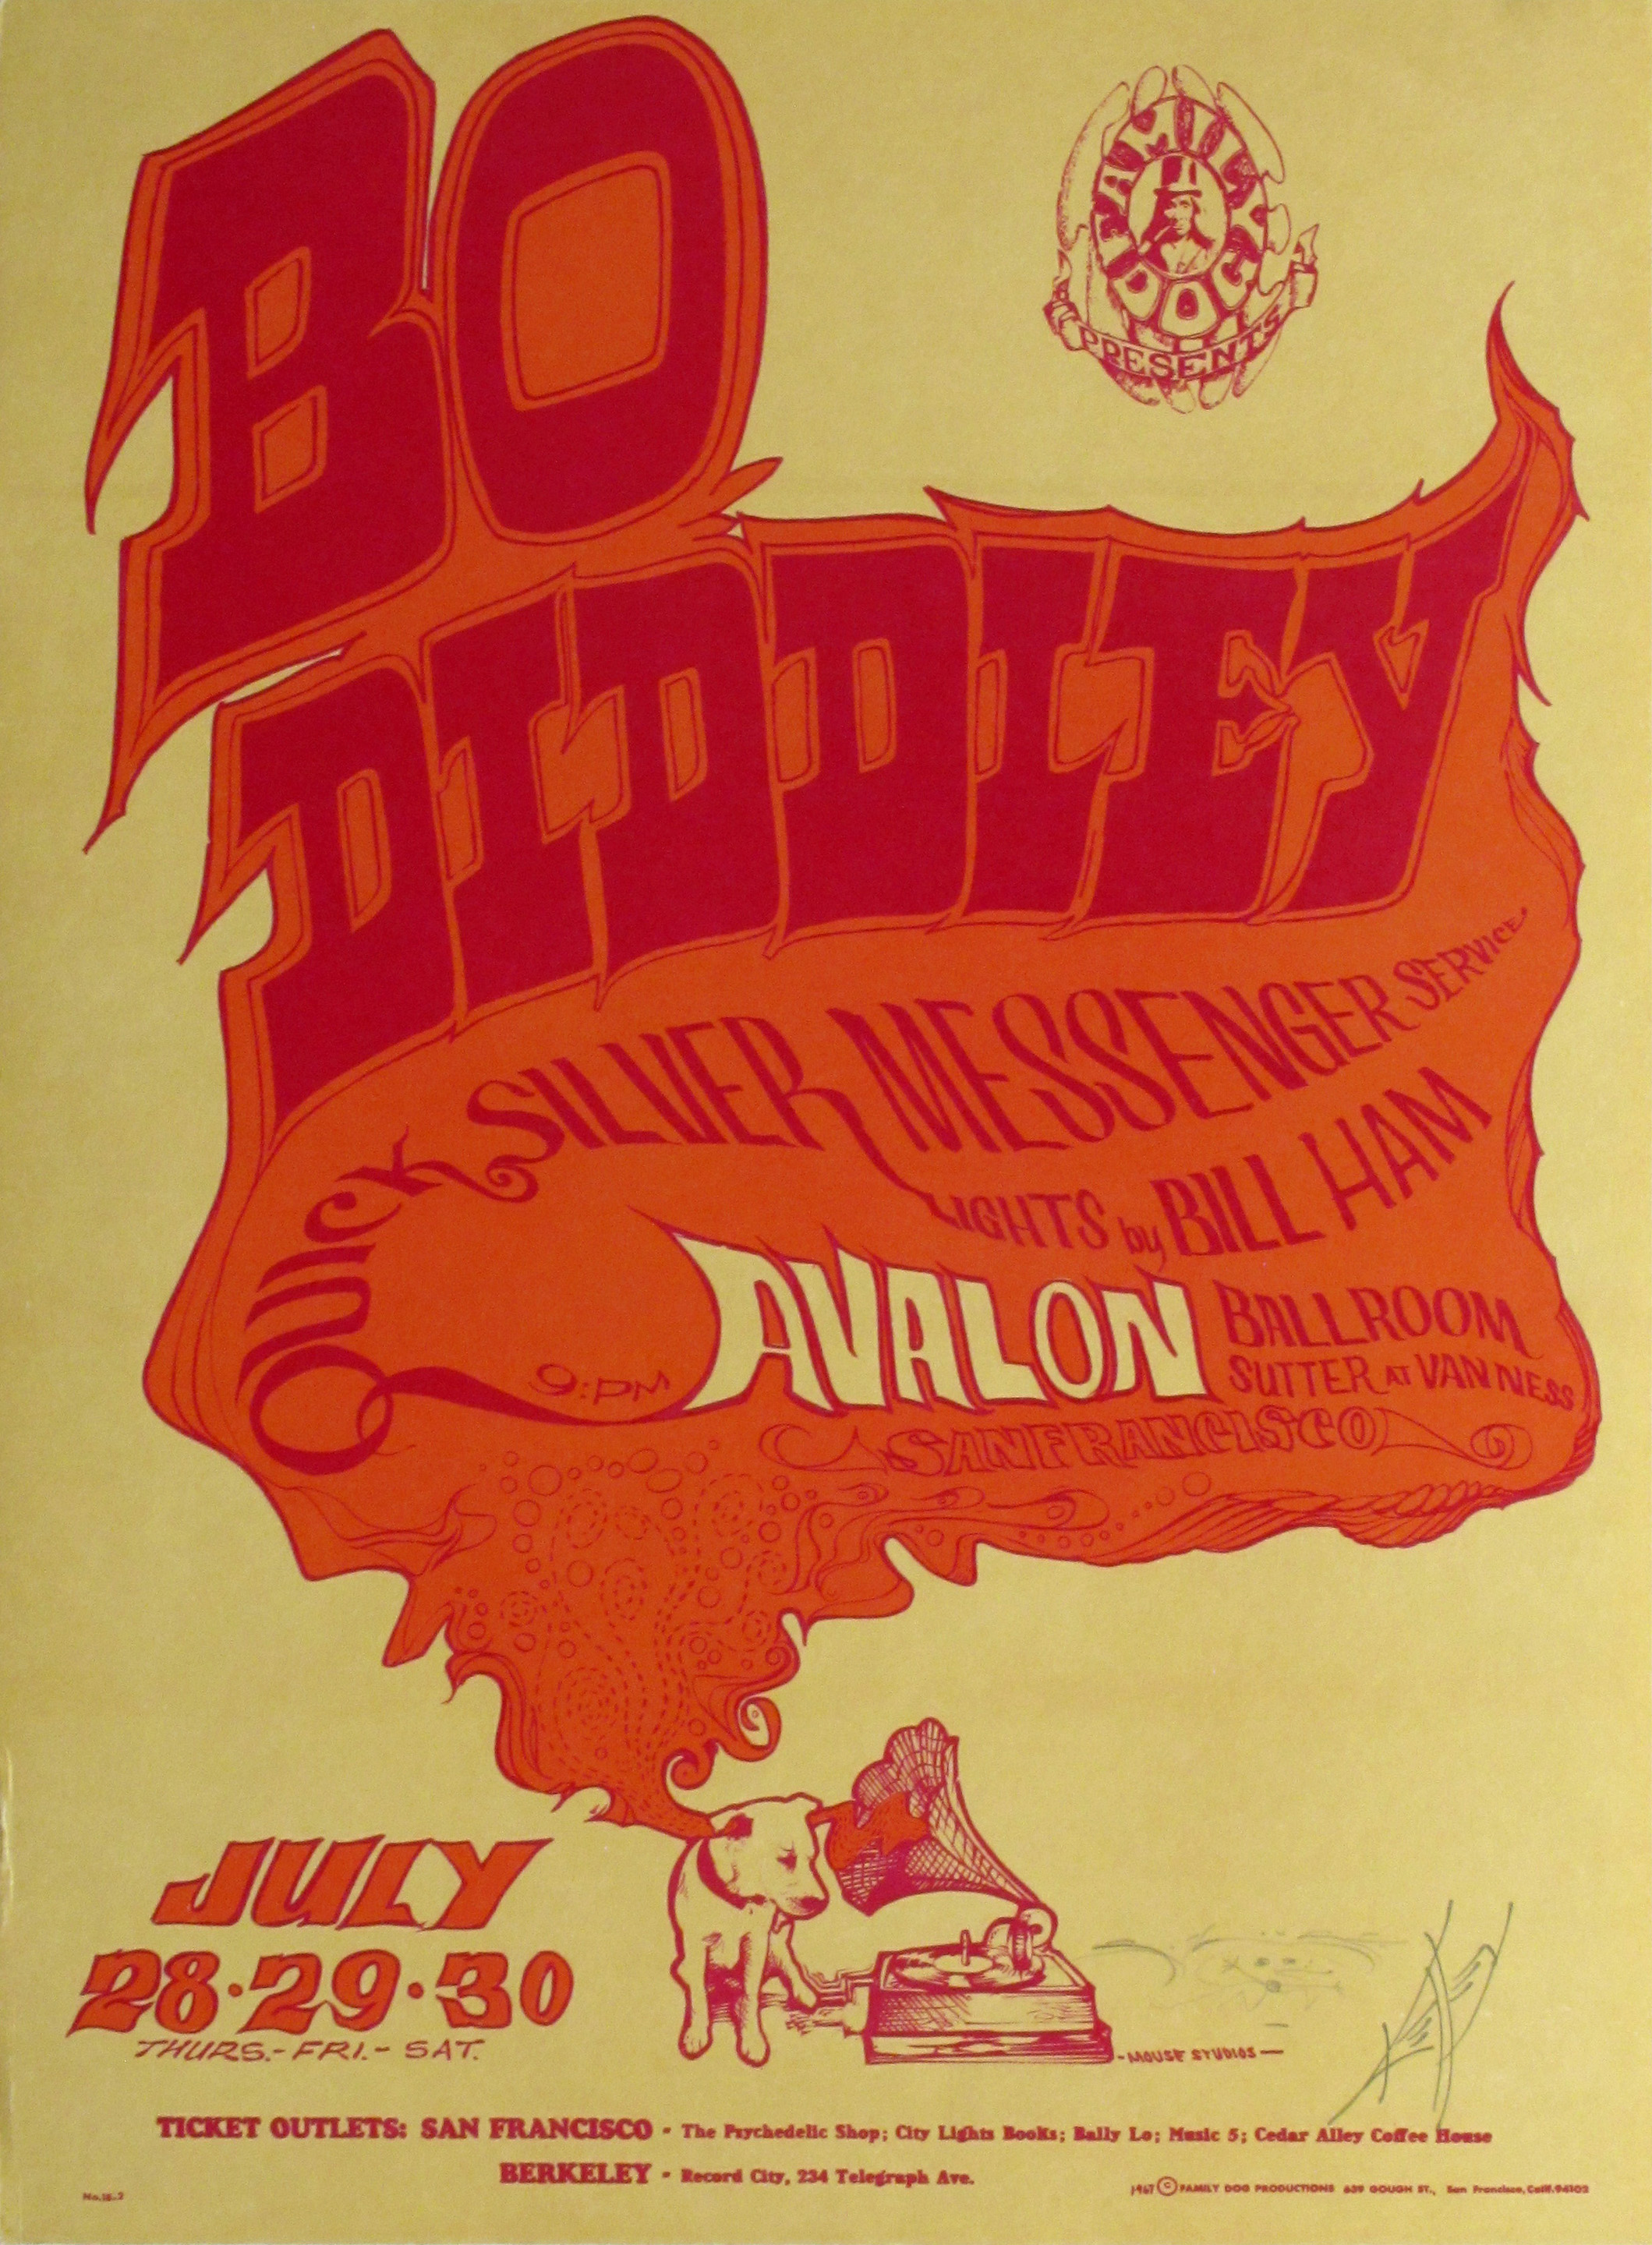 Bo Diddley - The Blues Biography